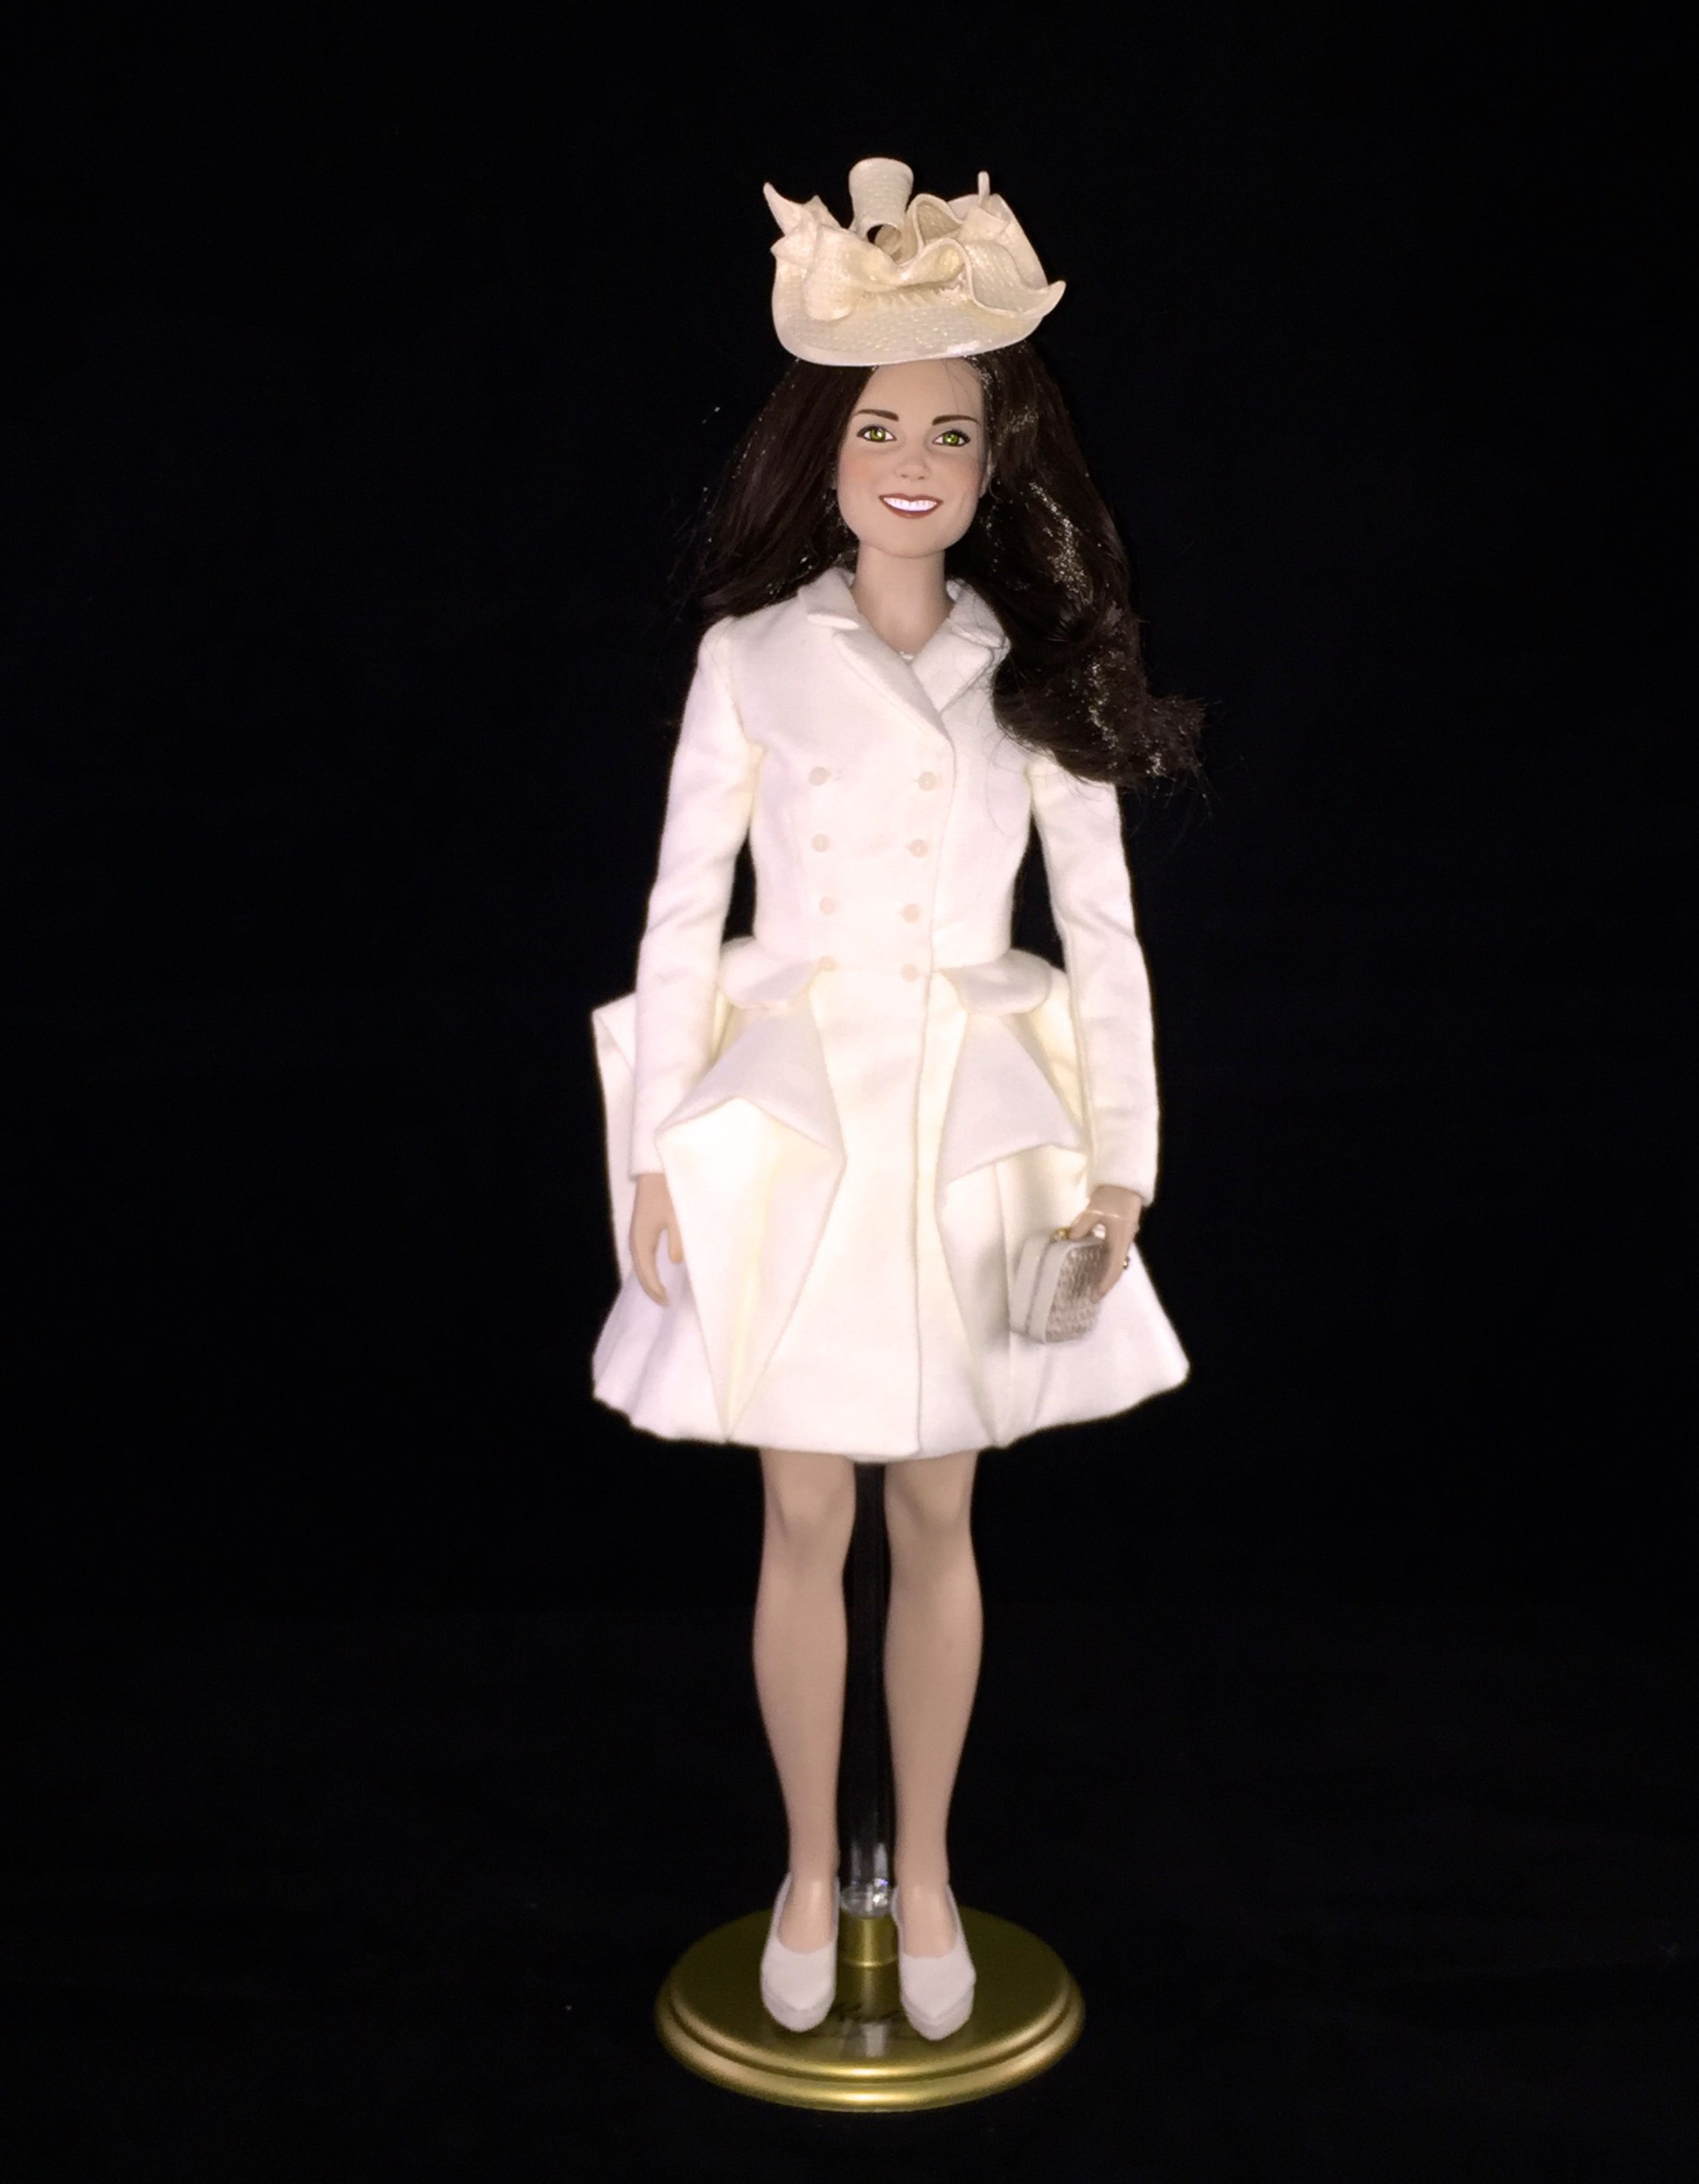 This is a custom replica of the cream ruffled coat dress